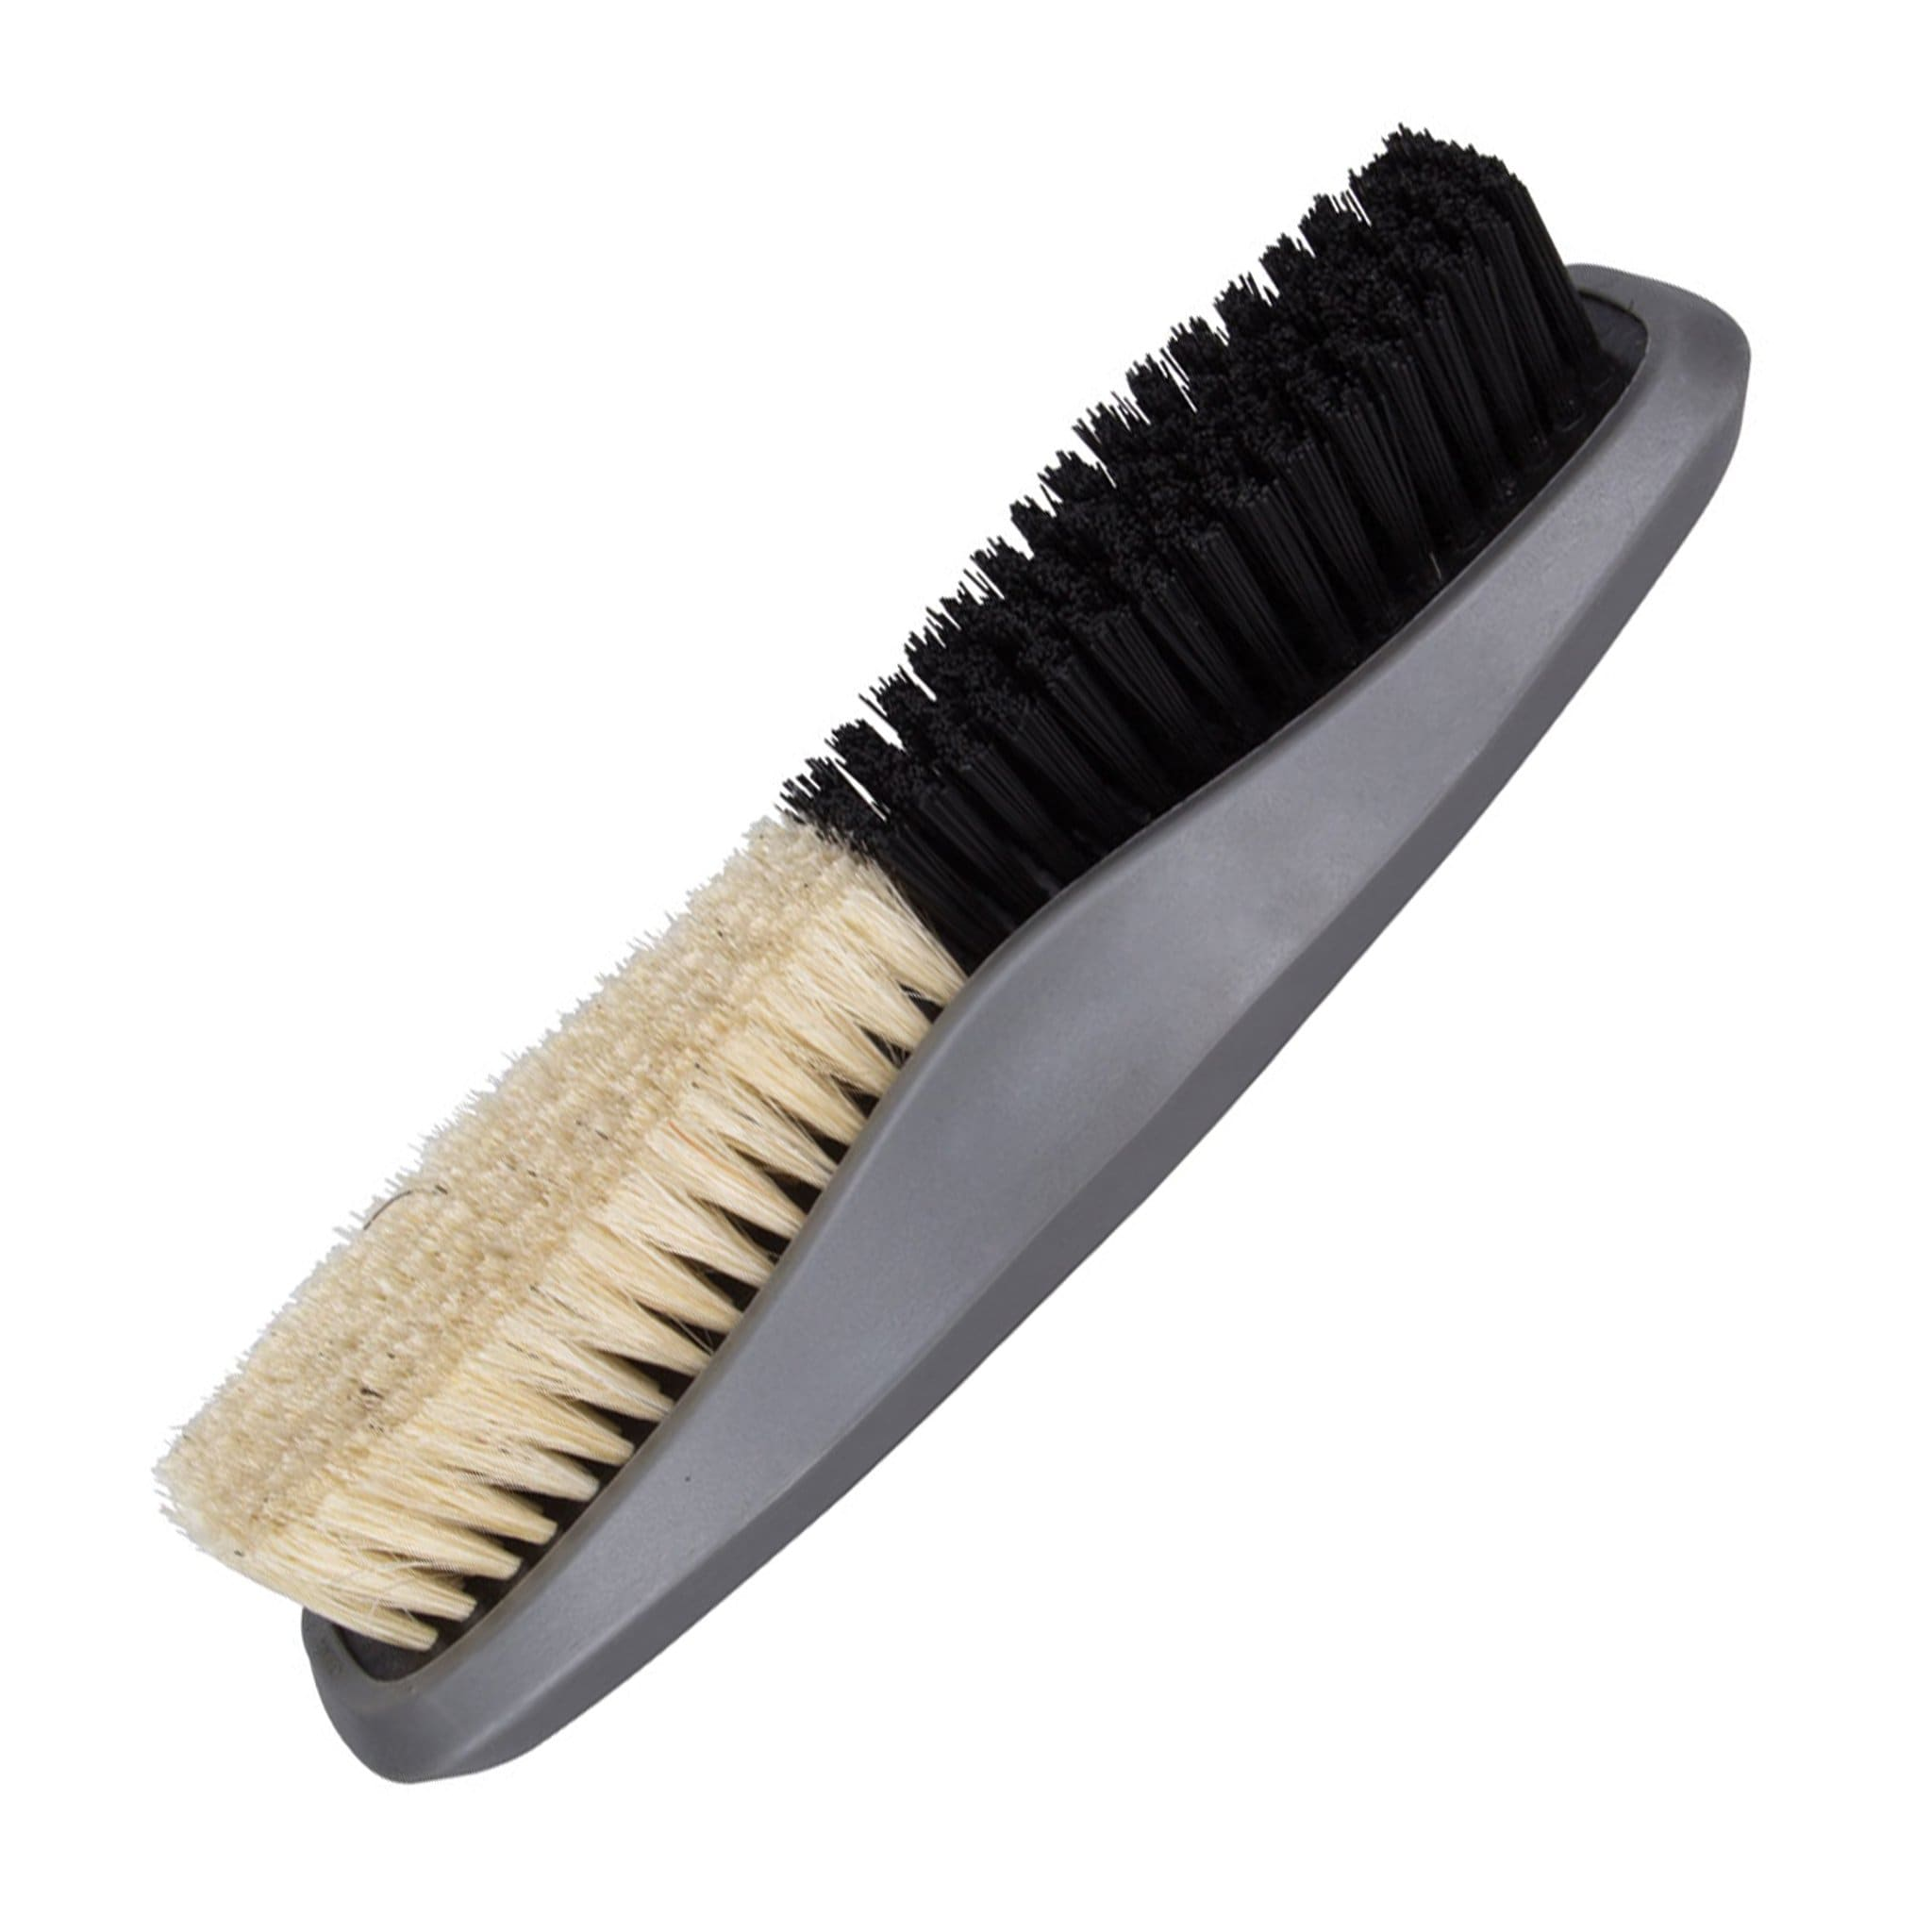 Wahl Body Brush Blackj and White